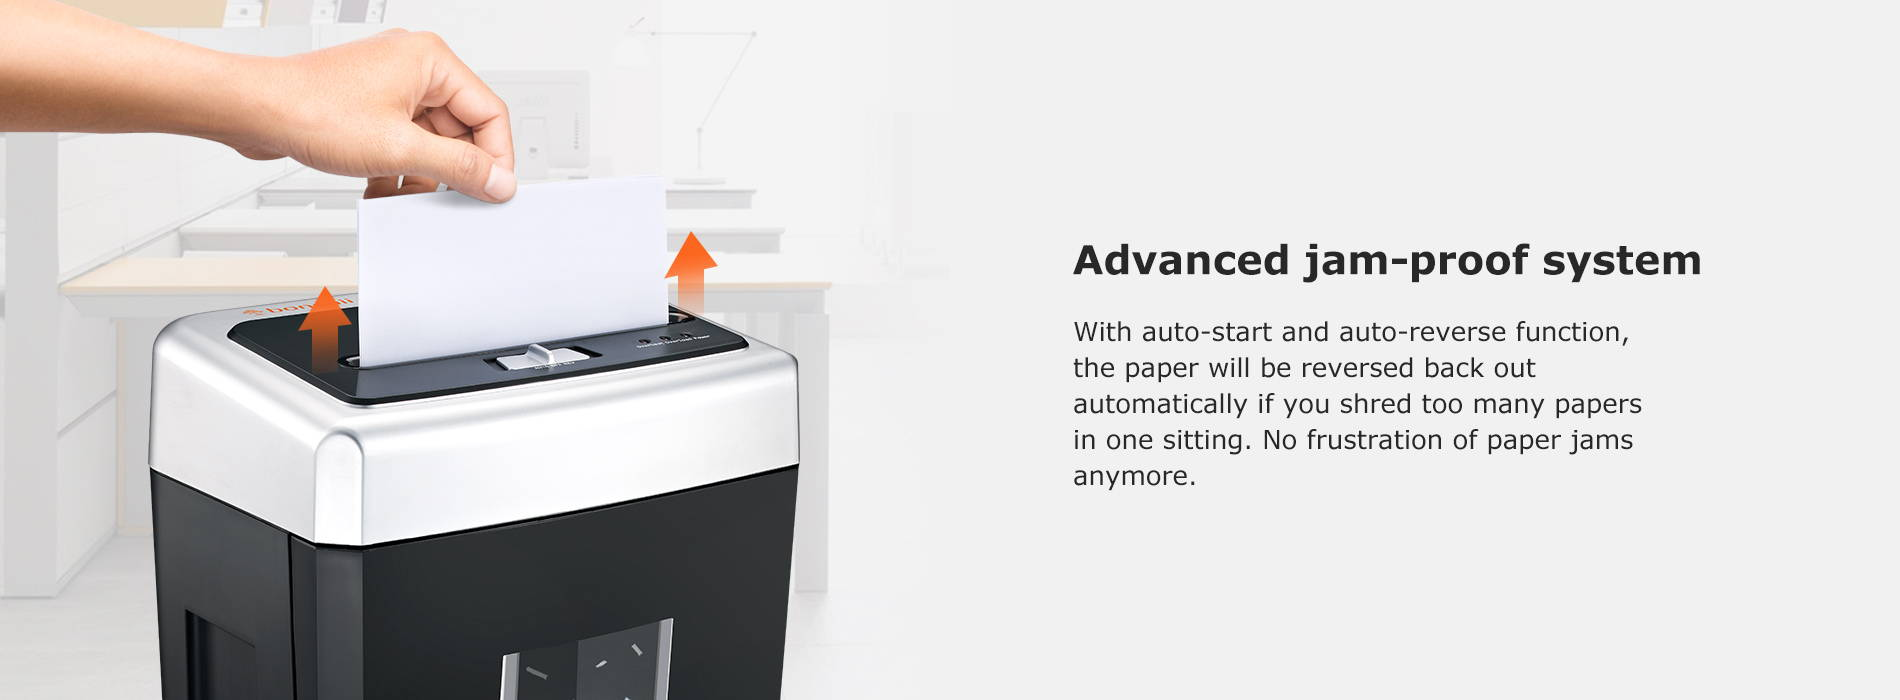 Advanced jam-proof system With auto-start and auto-reverse function, the paper will be reversed back out automatically if you shred too many papers in one sitting. No frustration of paper jams anymore.